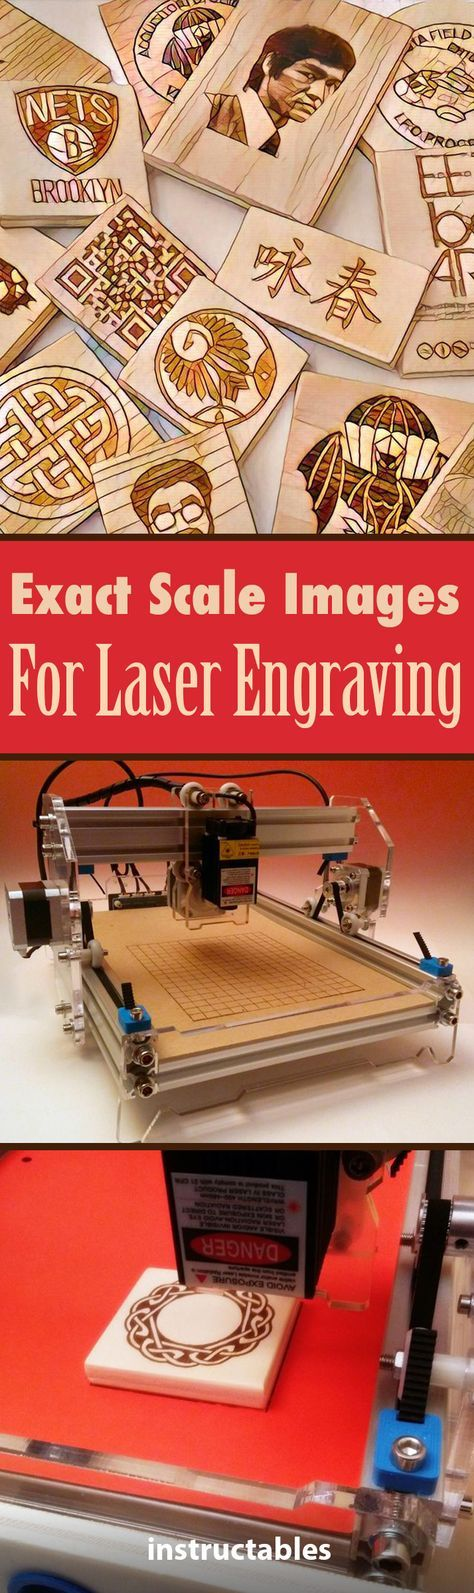 laser cutter projects The hottest tool for makers is powerful, versatile, and spendy — here's what you need to know to get started with your first laser cutter.